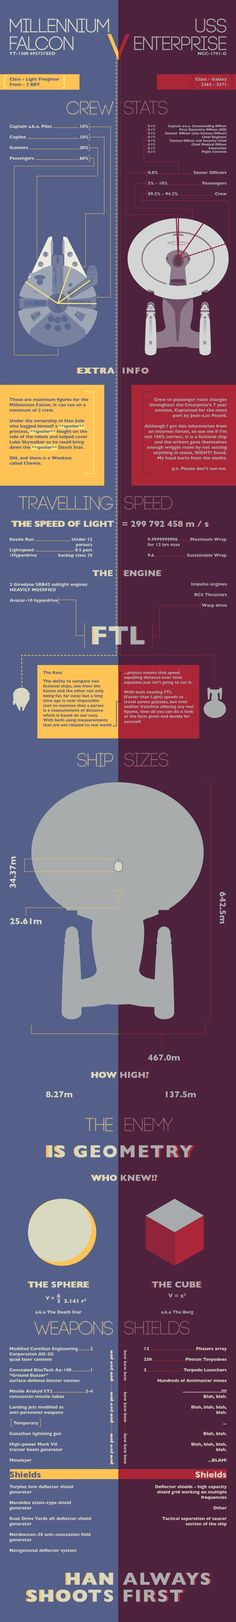 USS Enterprise vs. Millenium Falcon: Know Your Facts